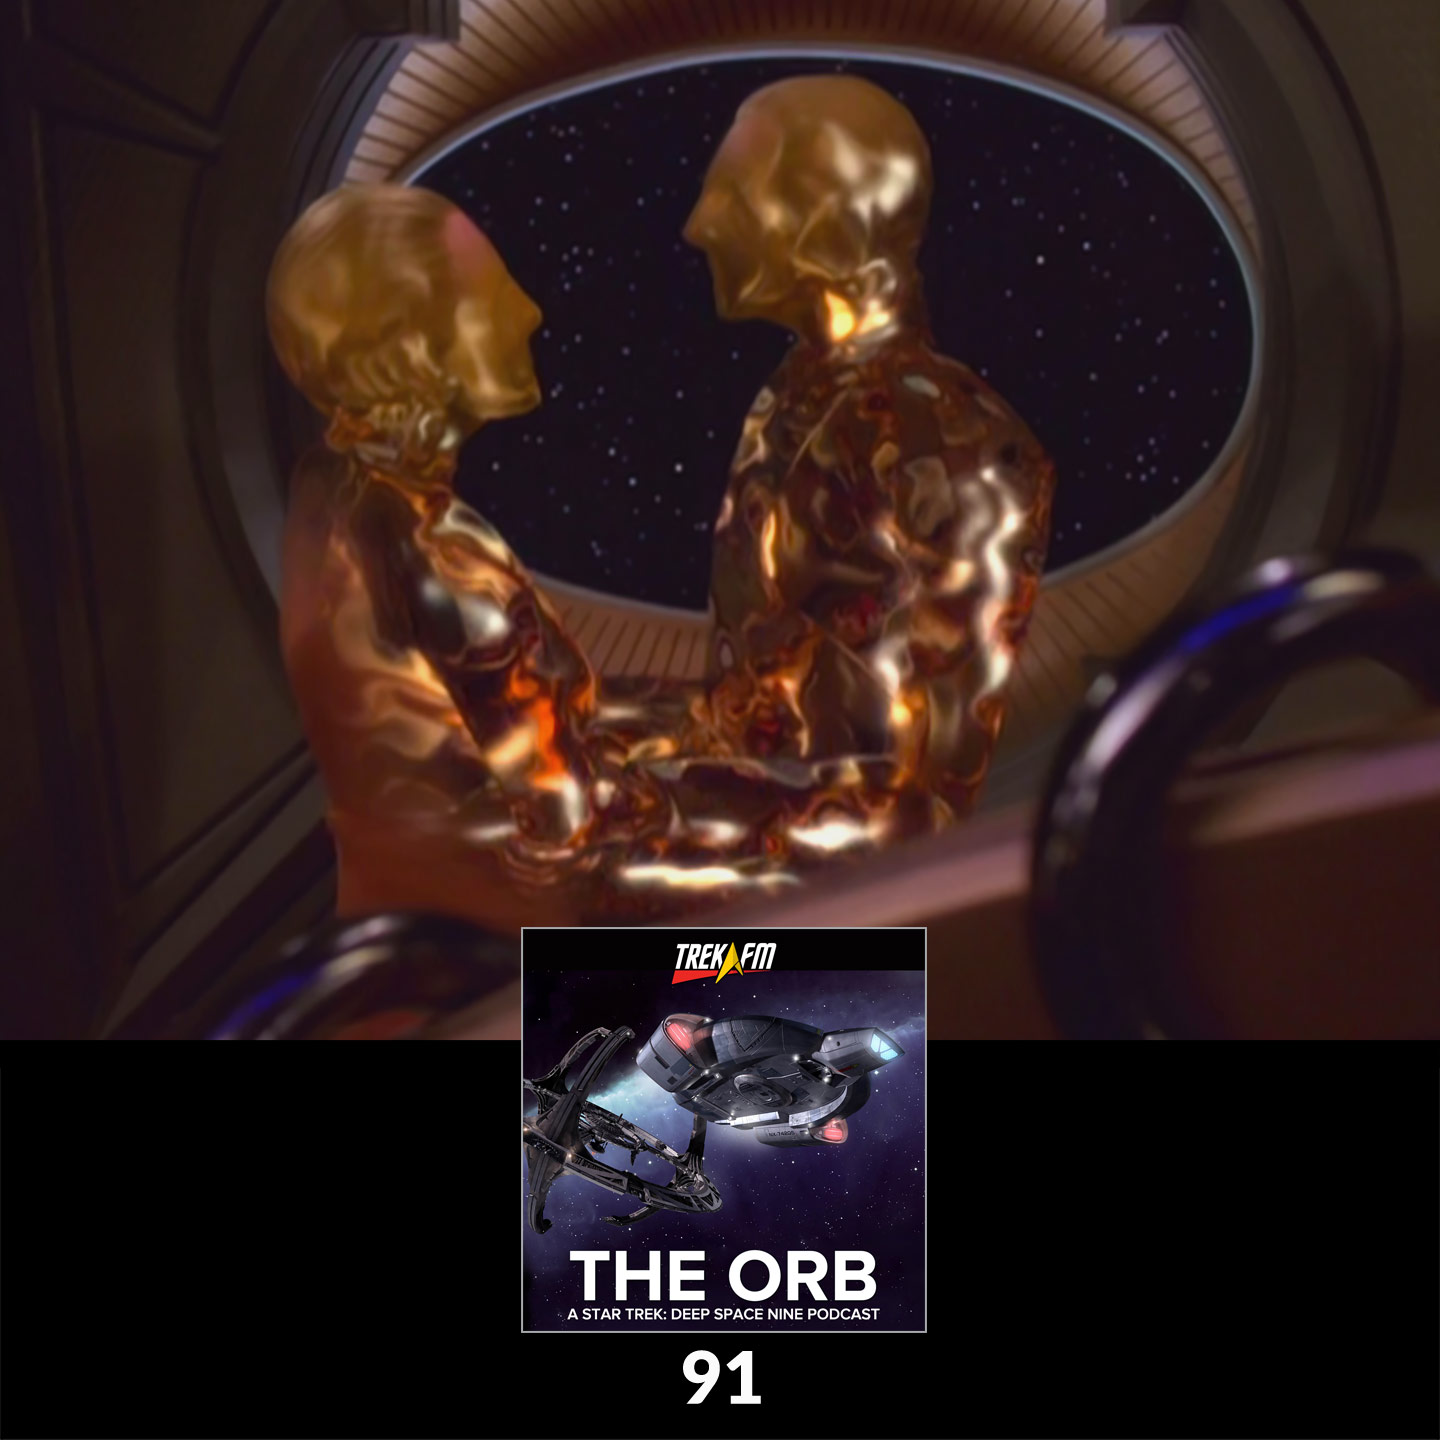 The Orb 91: Morally Ambiguous